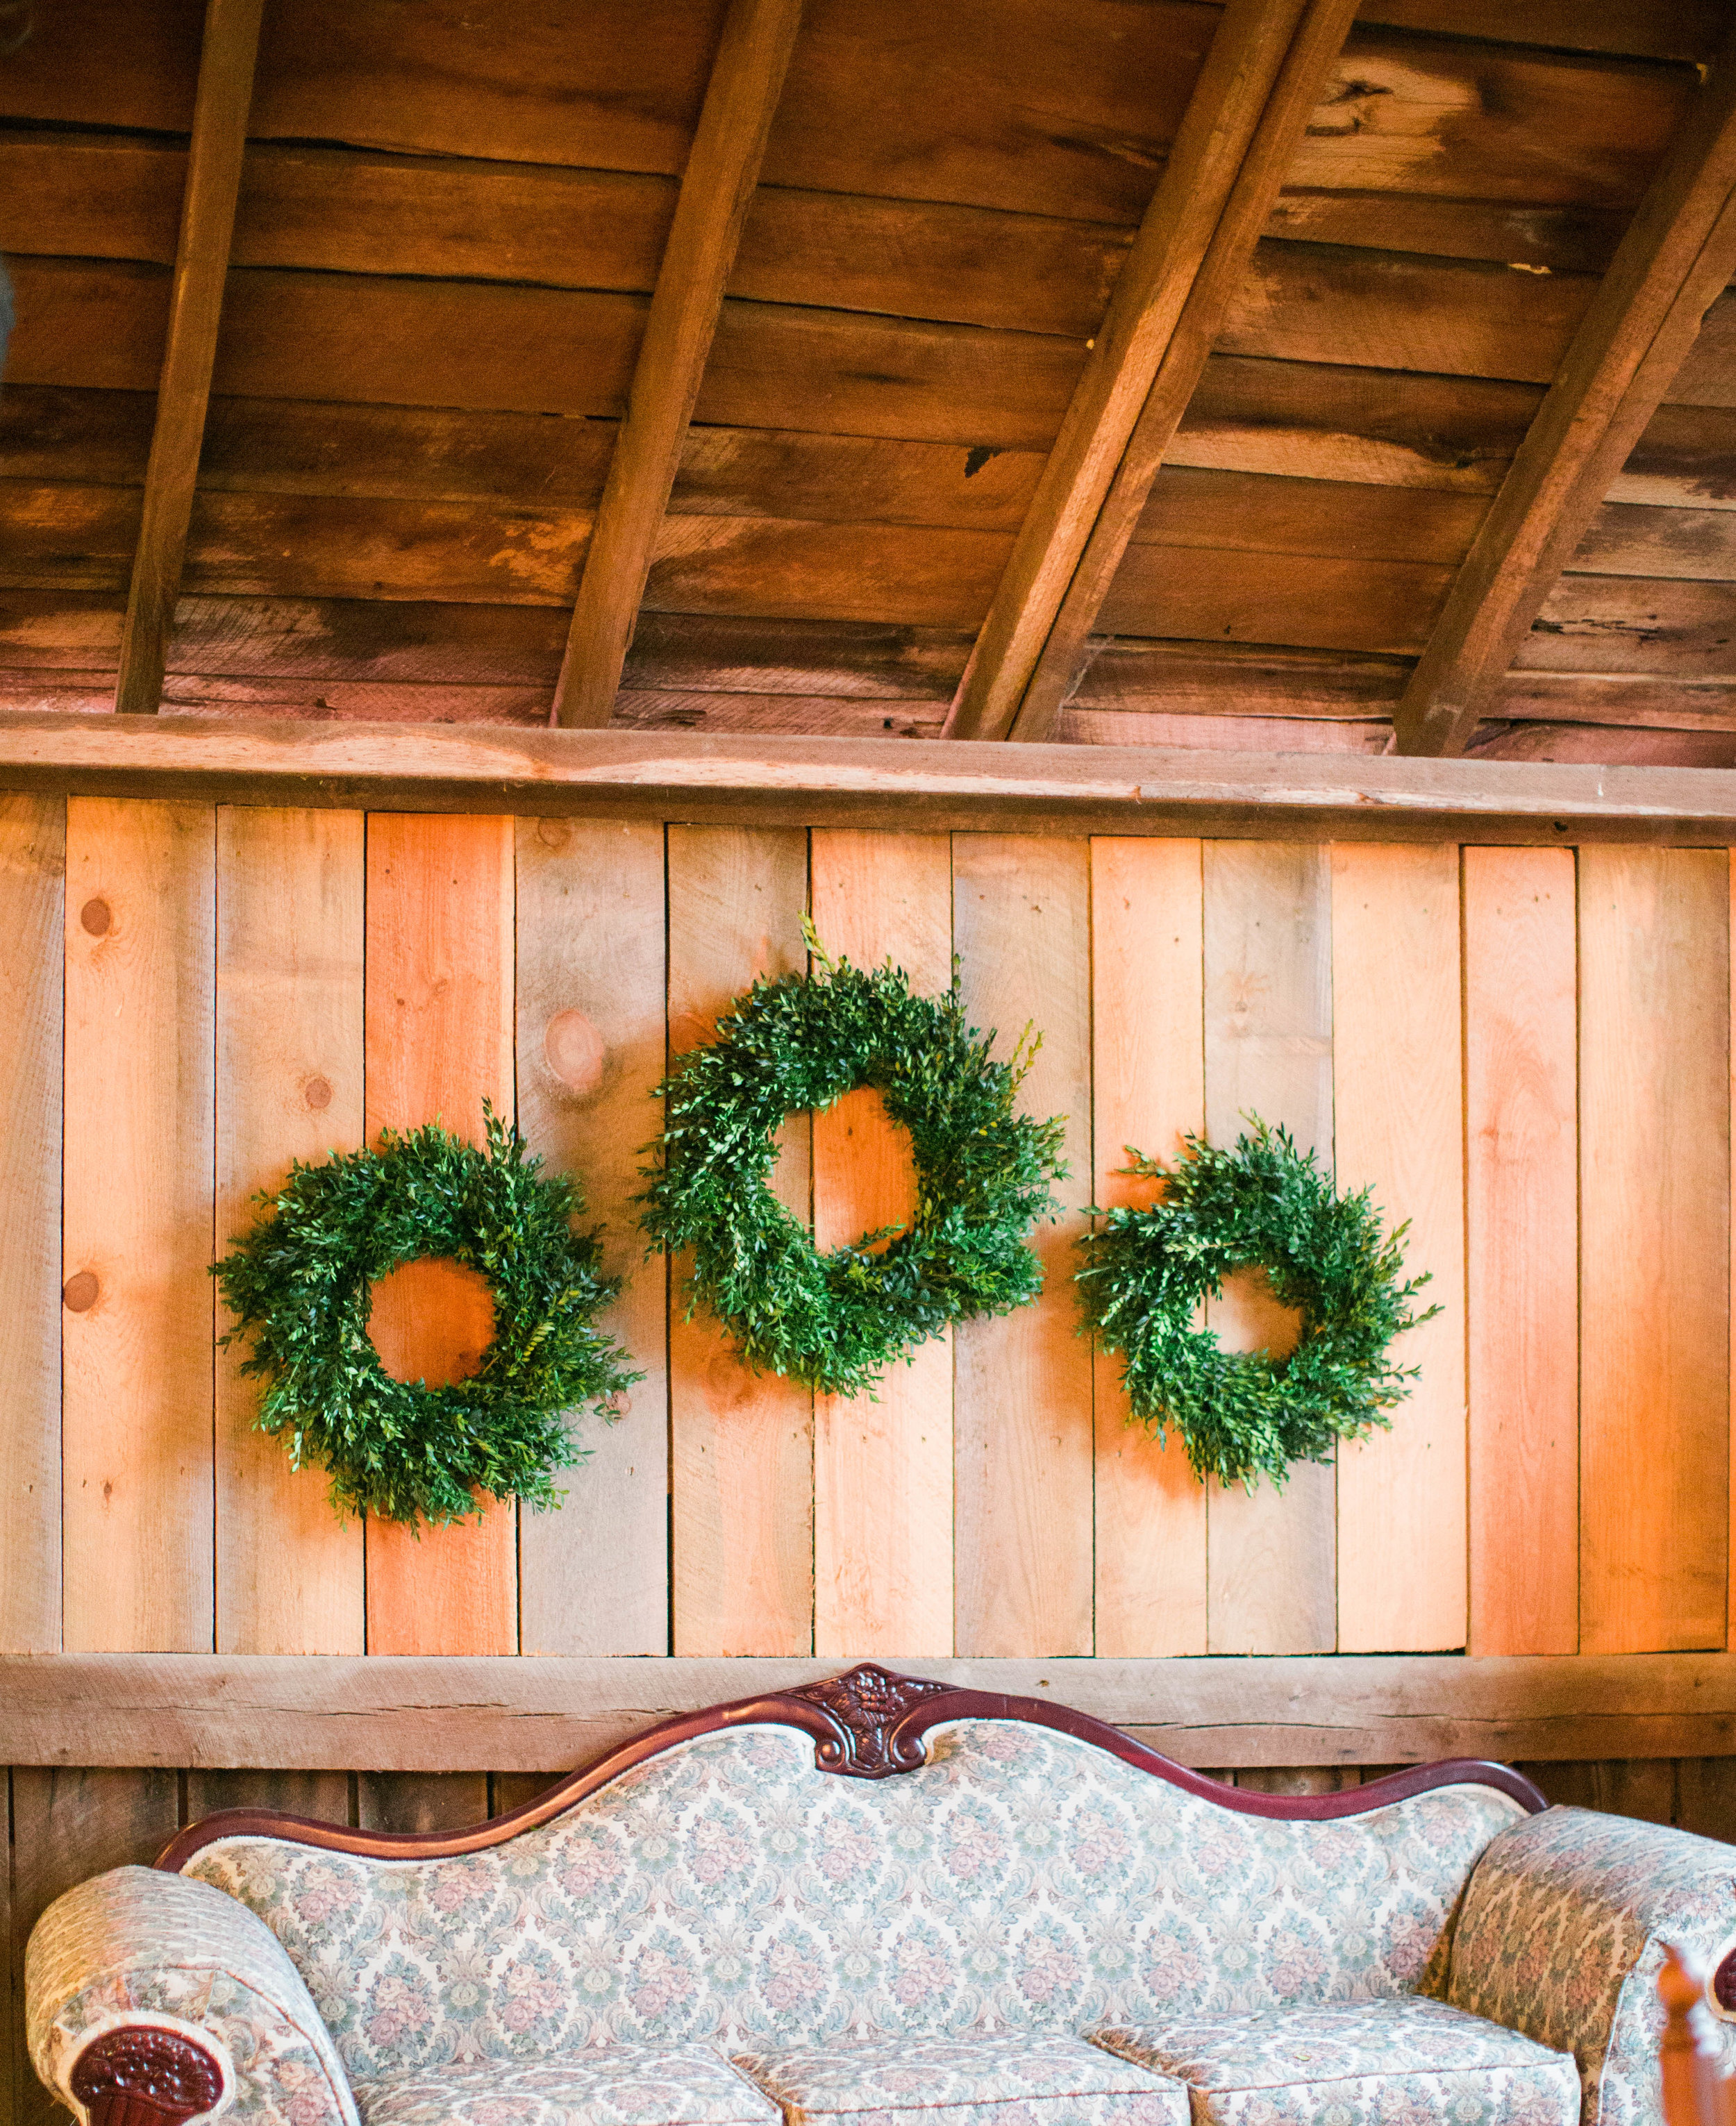 barnatspringhousewreath-3073.jpg